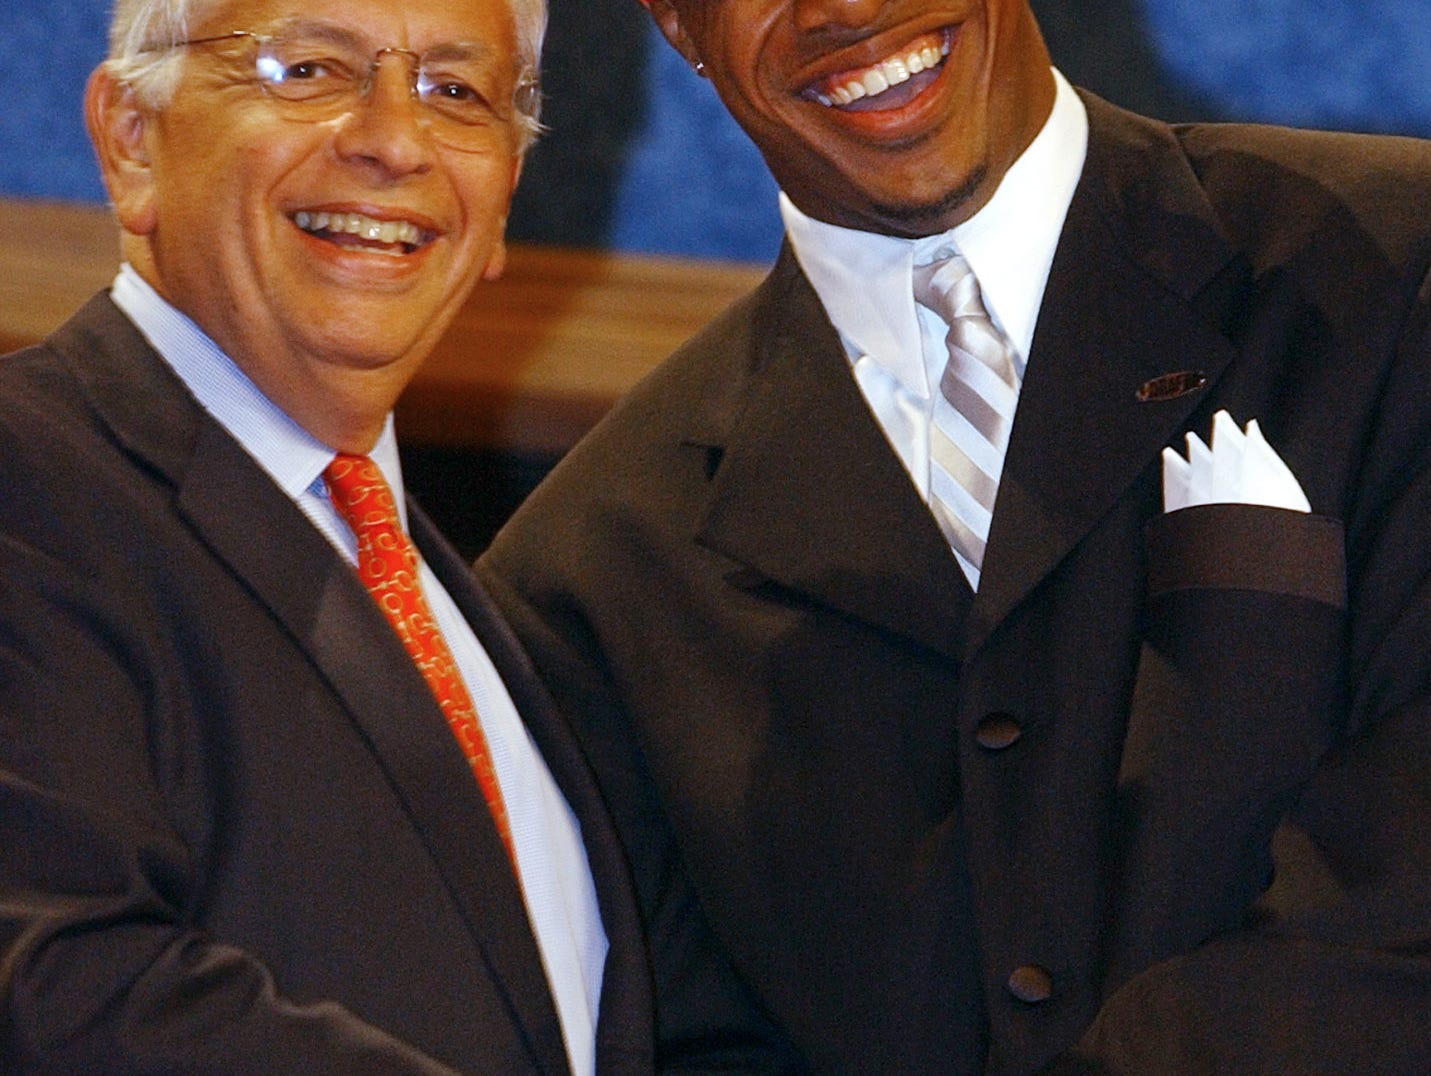 Jay Williams, of Duke University, shakes hands with NBA Commissioner David Stern after being picked second in the NBA Draft by the Chicago Bulls, Wednesday, June 26, 2002, in New York.